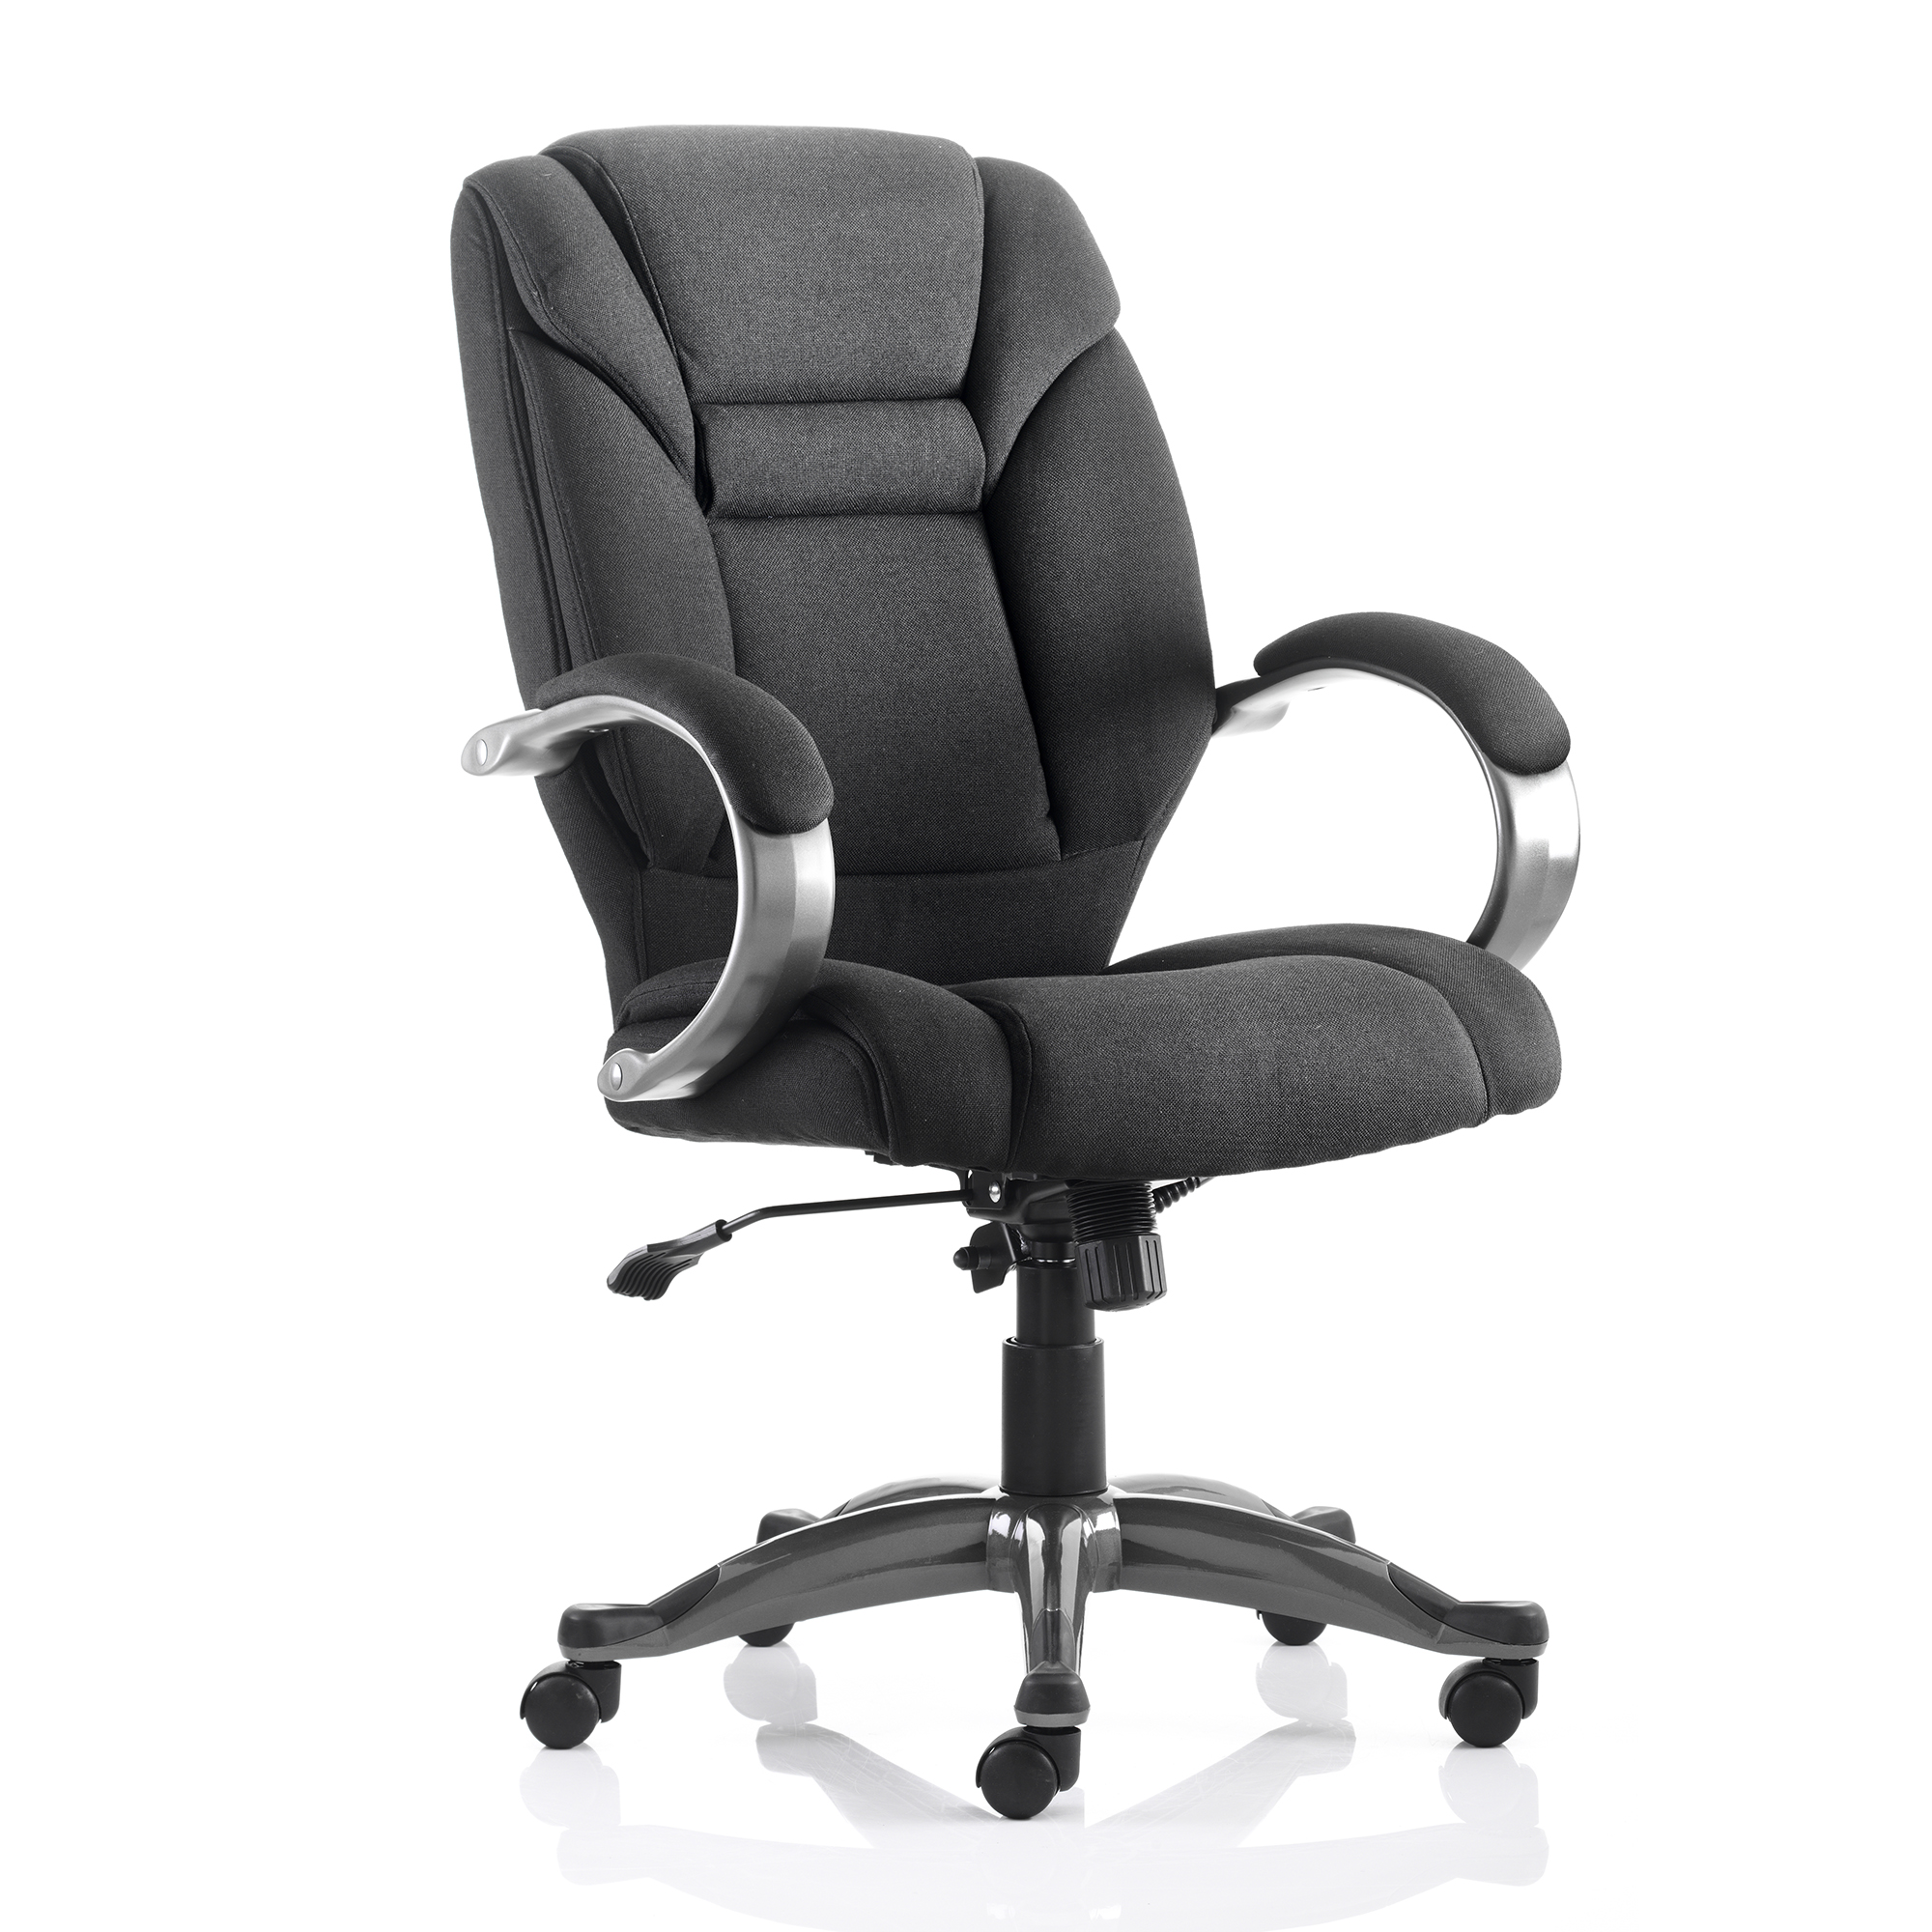 Executive seating Trexus Galloway Executive Chair With Arms Fabric Black Ref EX000030